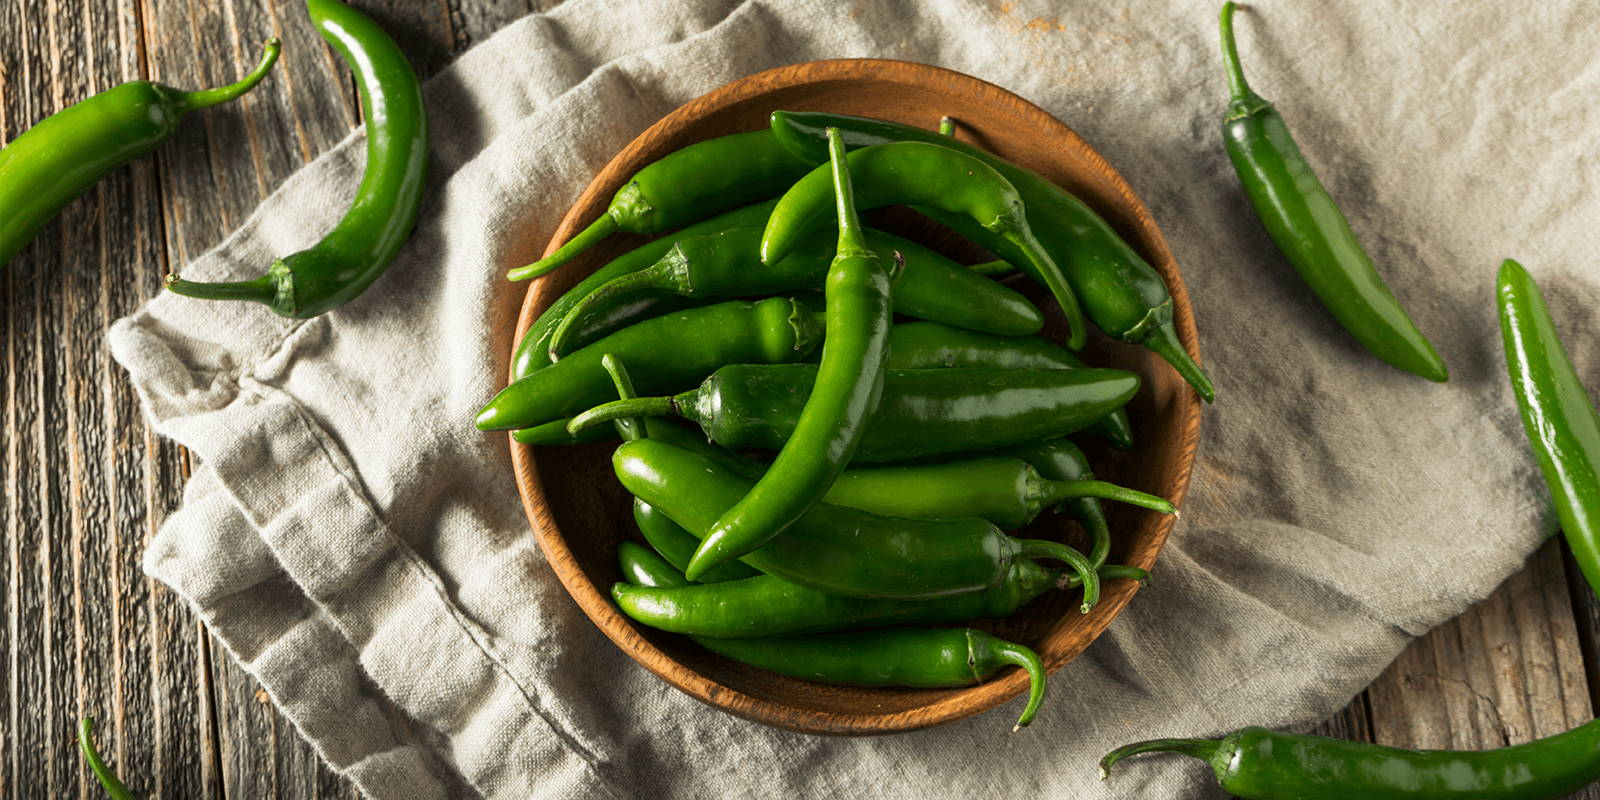 Jalapeno peppers in a bowl.